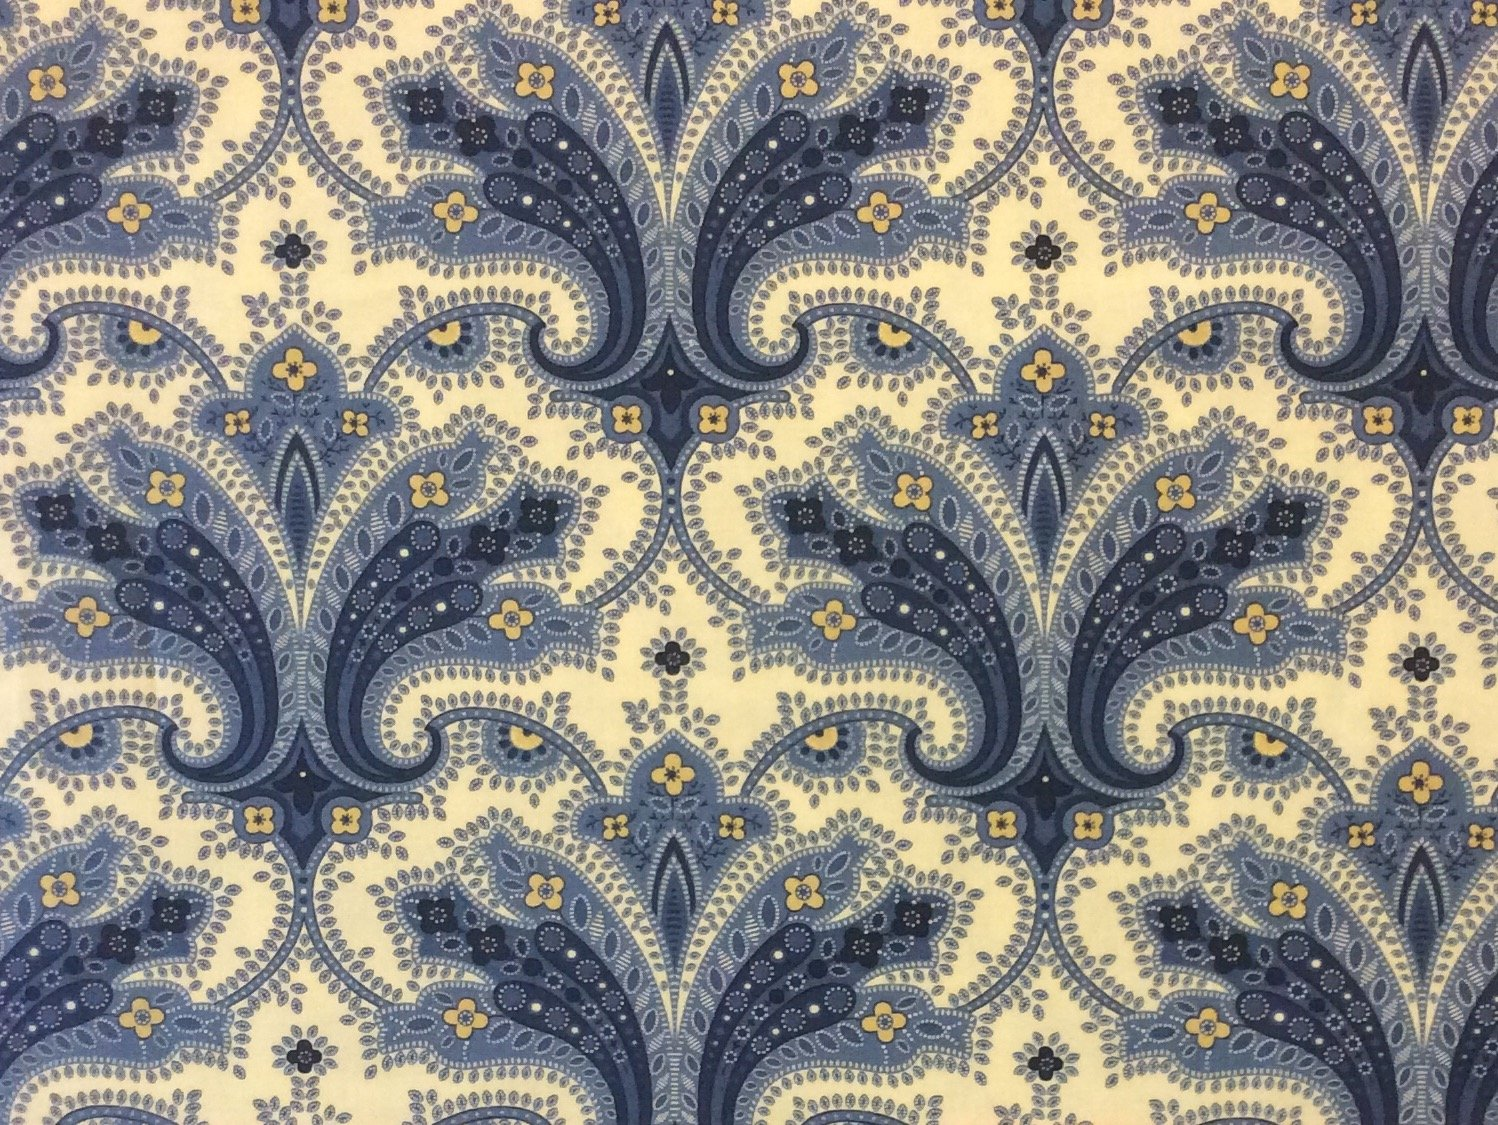 MO37 Floral Paisley Damask Kitsch Elegant French Country Quilting Cotton Fabric